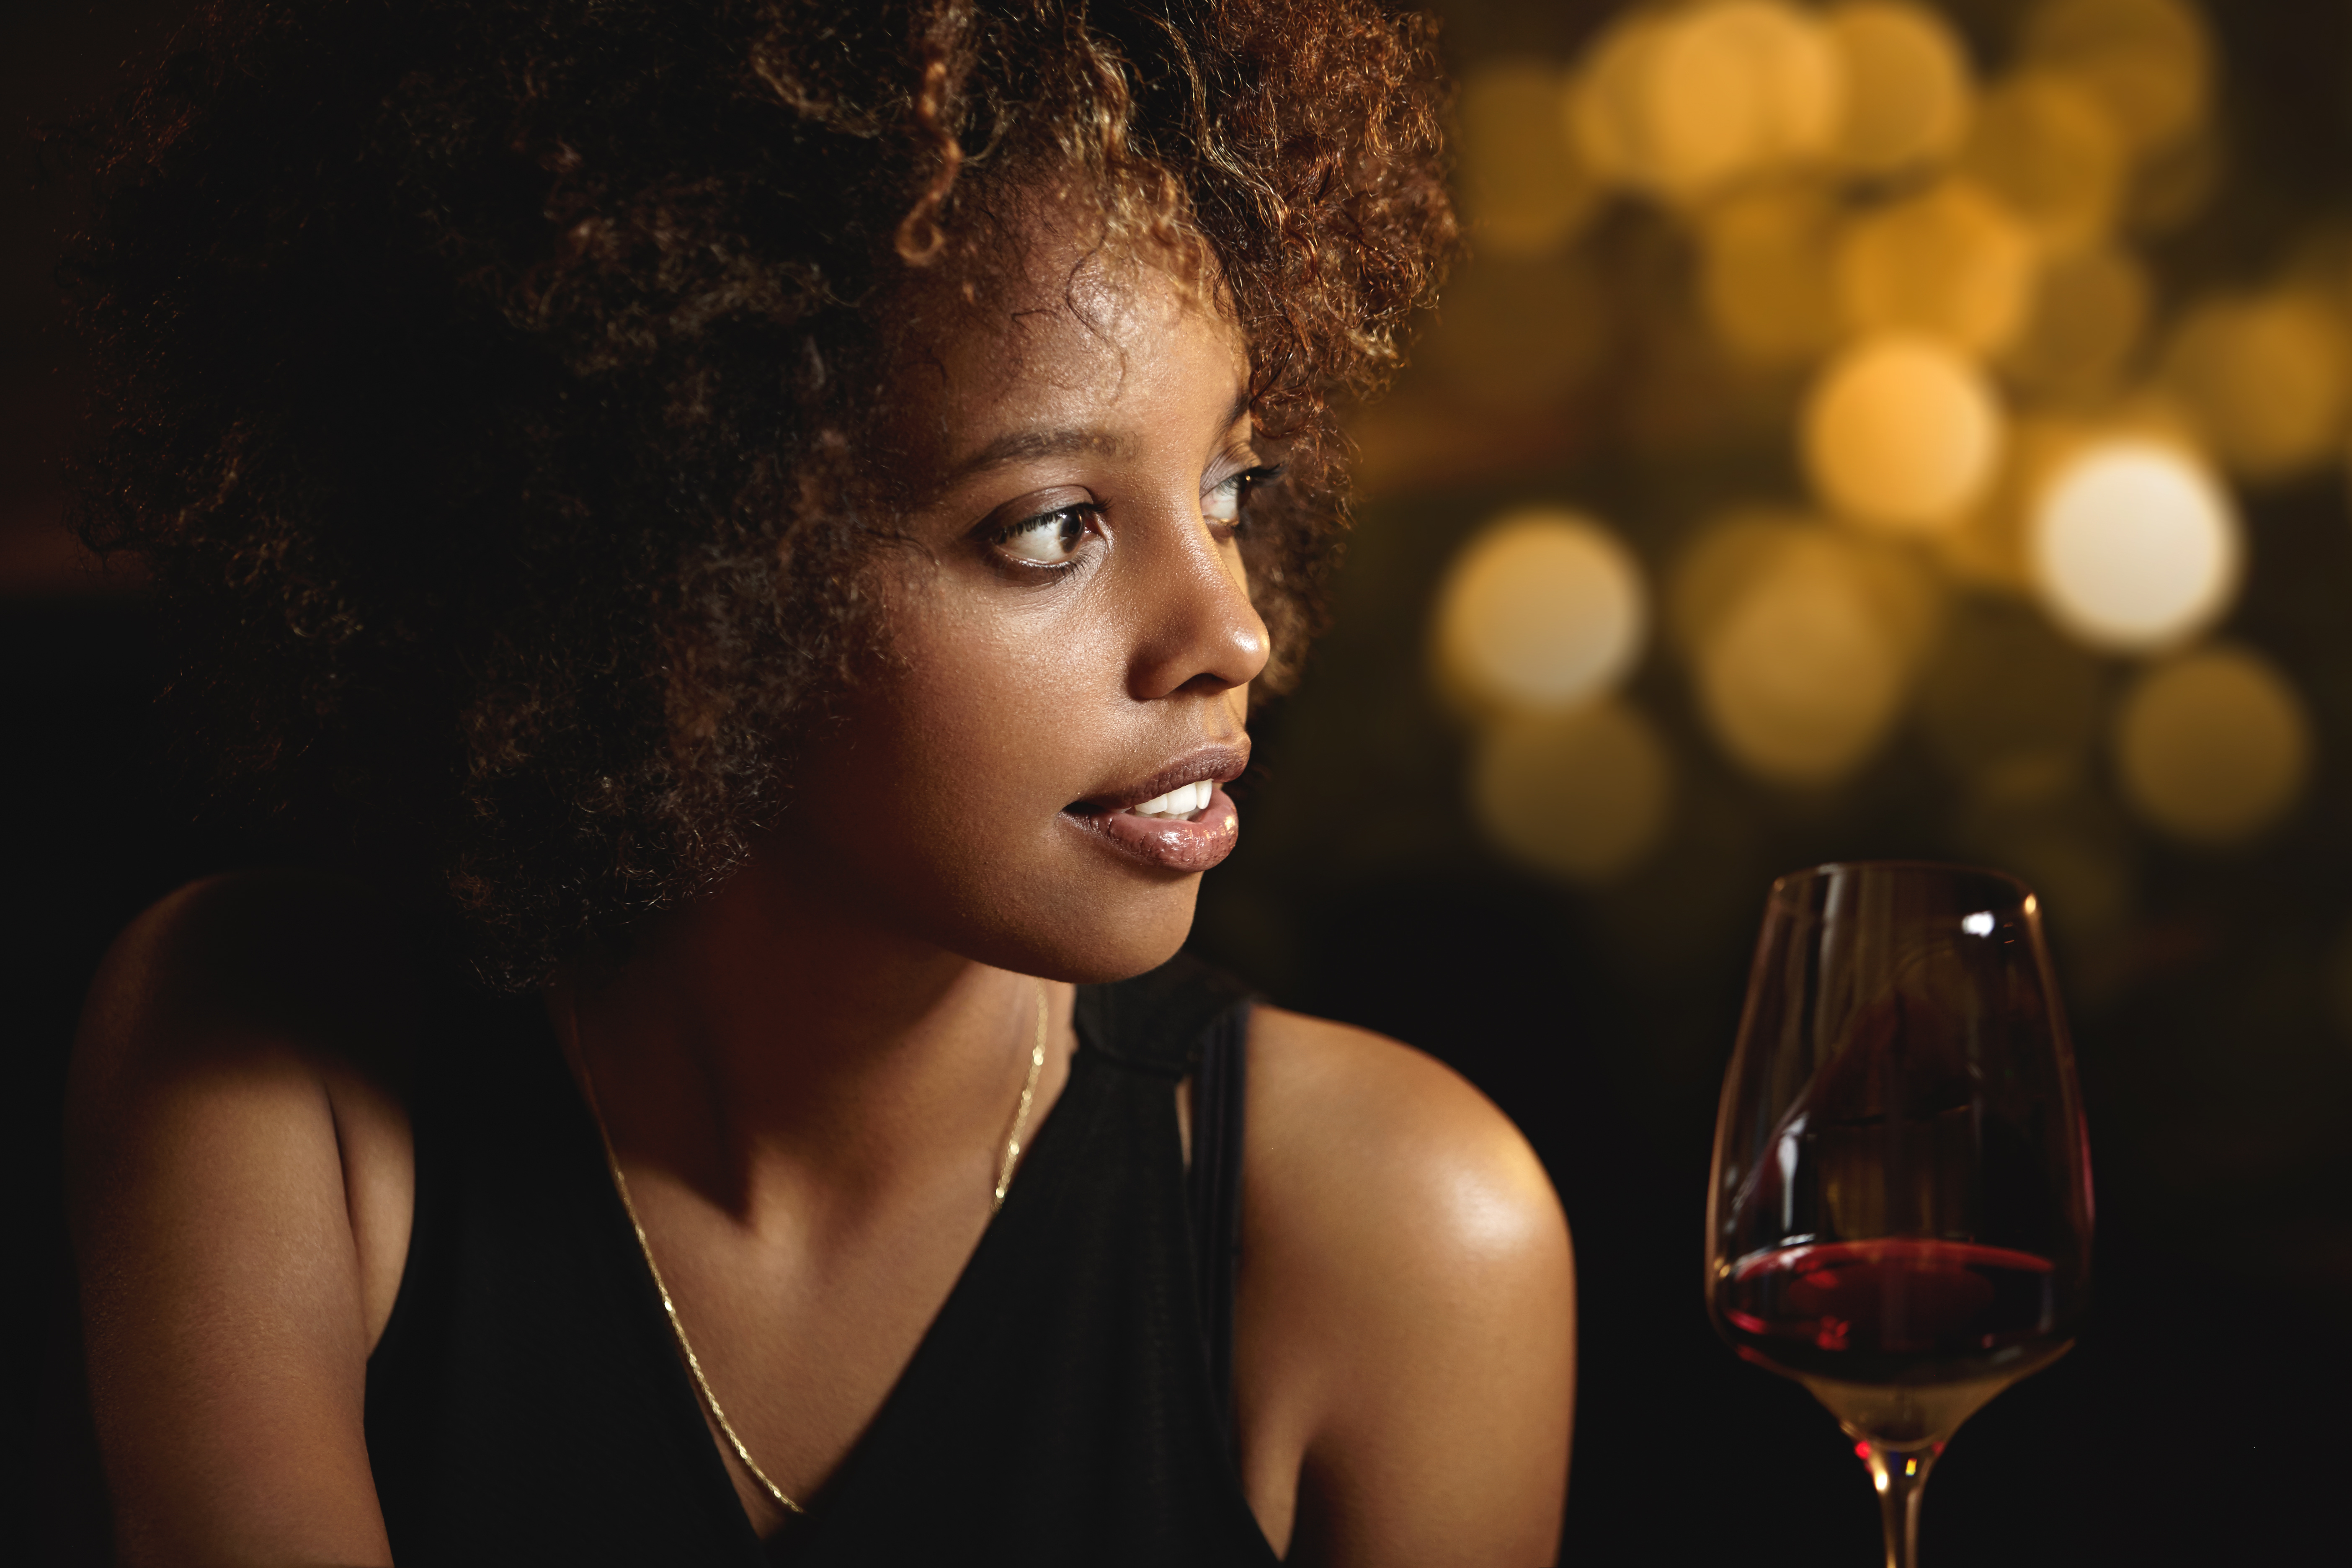 Alcohol abuse in women is on the rise – learn your safe limit (Part 1)